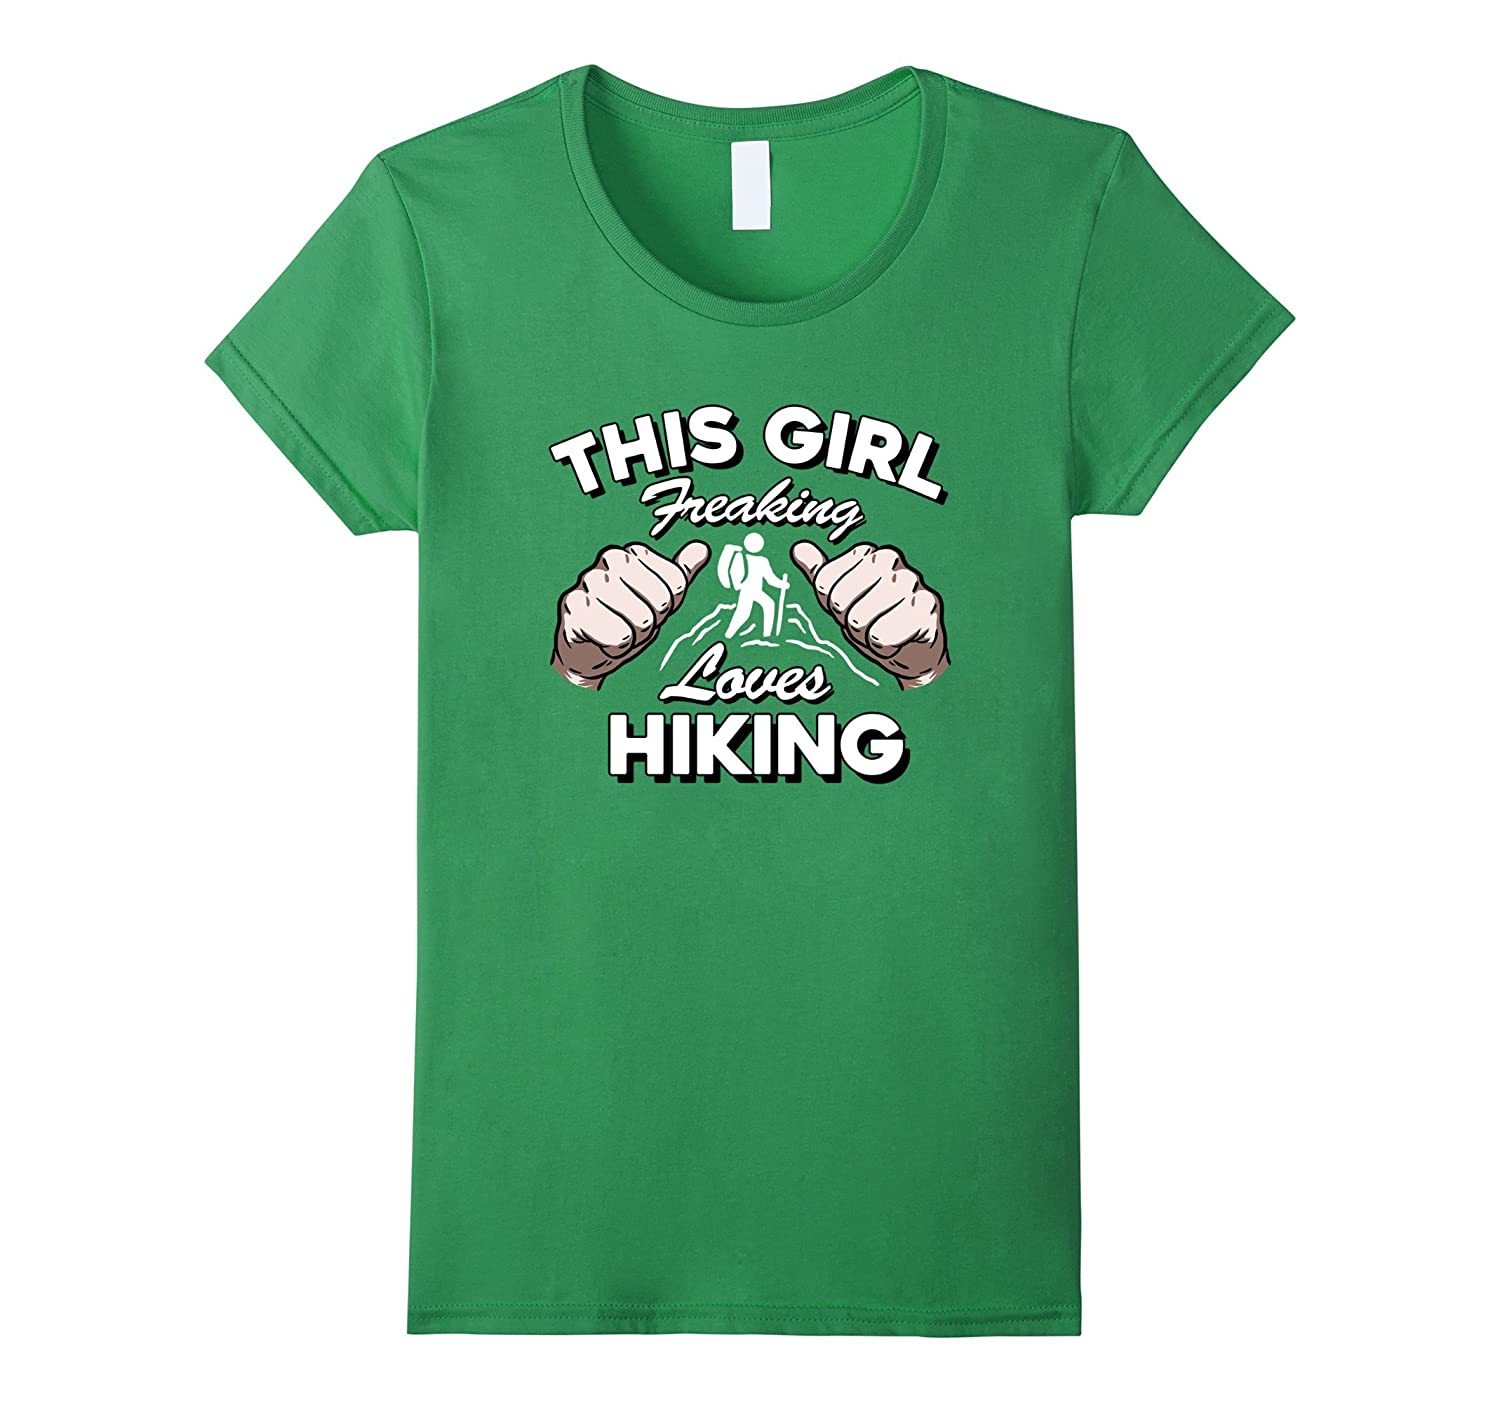 """""""This Girl Freaking Loves Hiking"""" Outdoors Hiker T Shirt"""